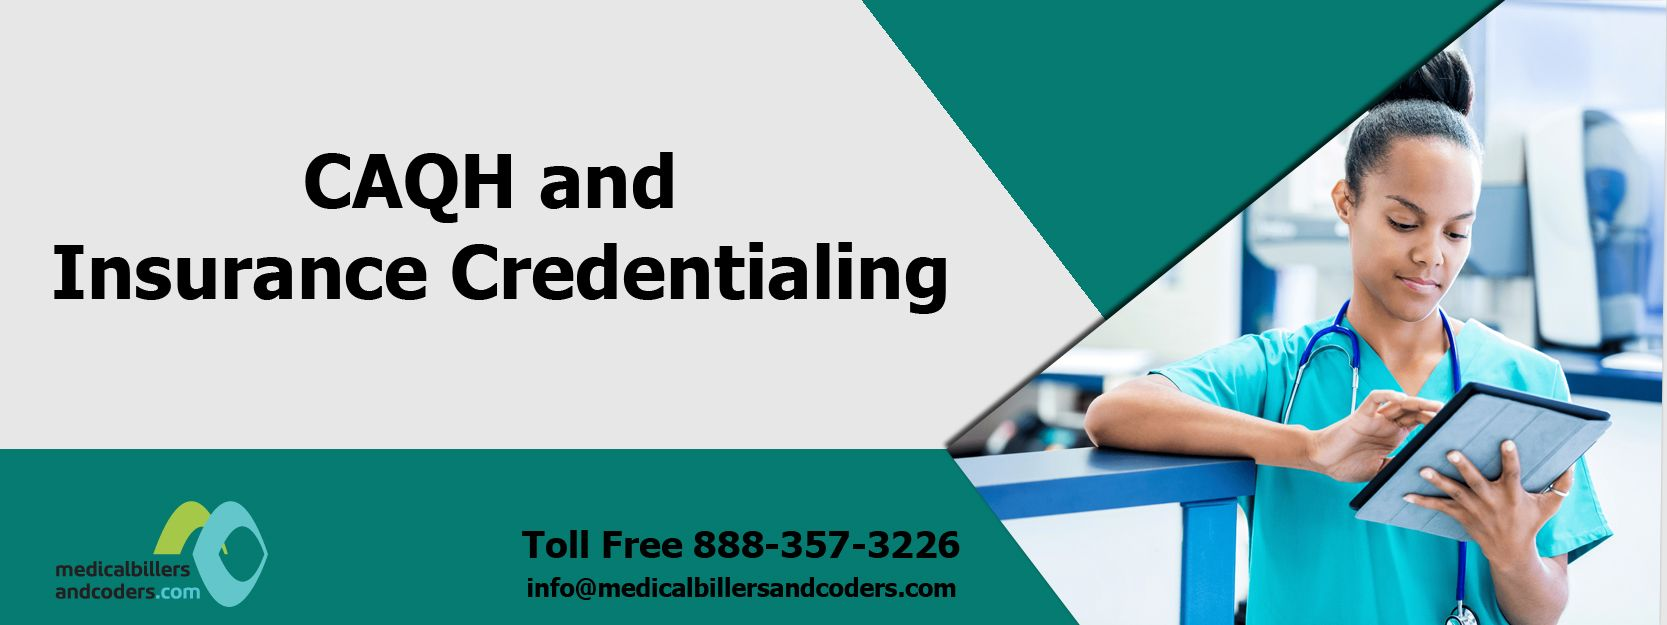 Caqh And Insurance Credentialing Health Insurance Companies